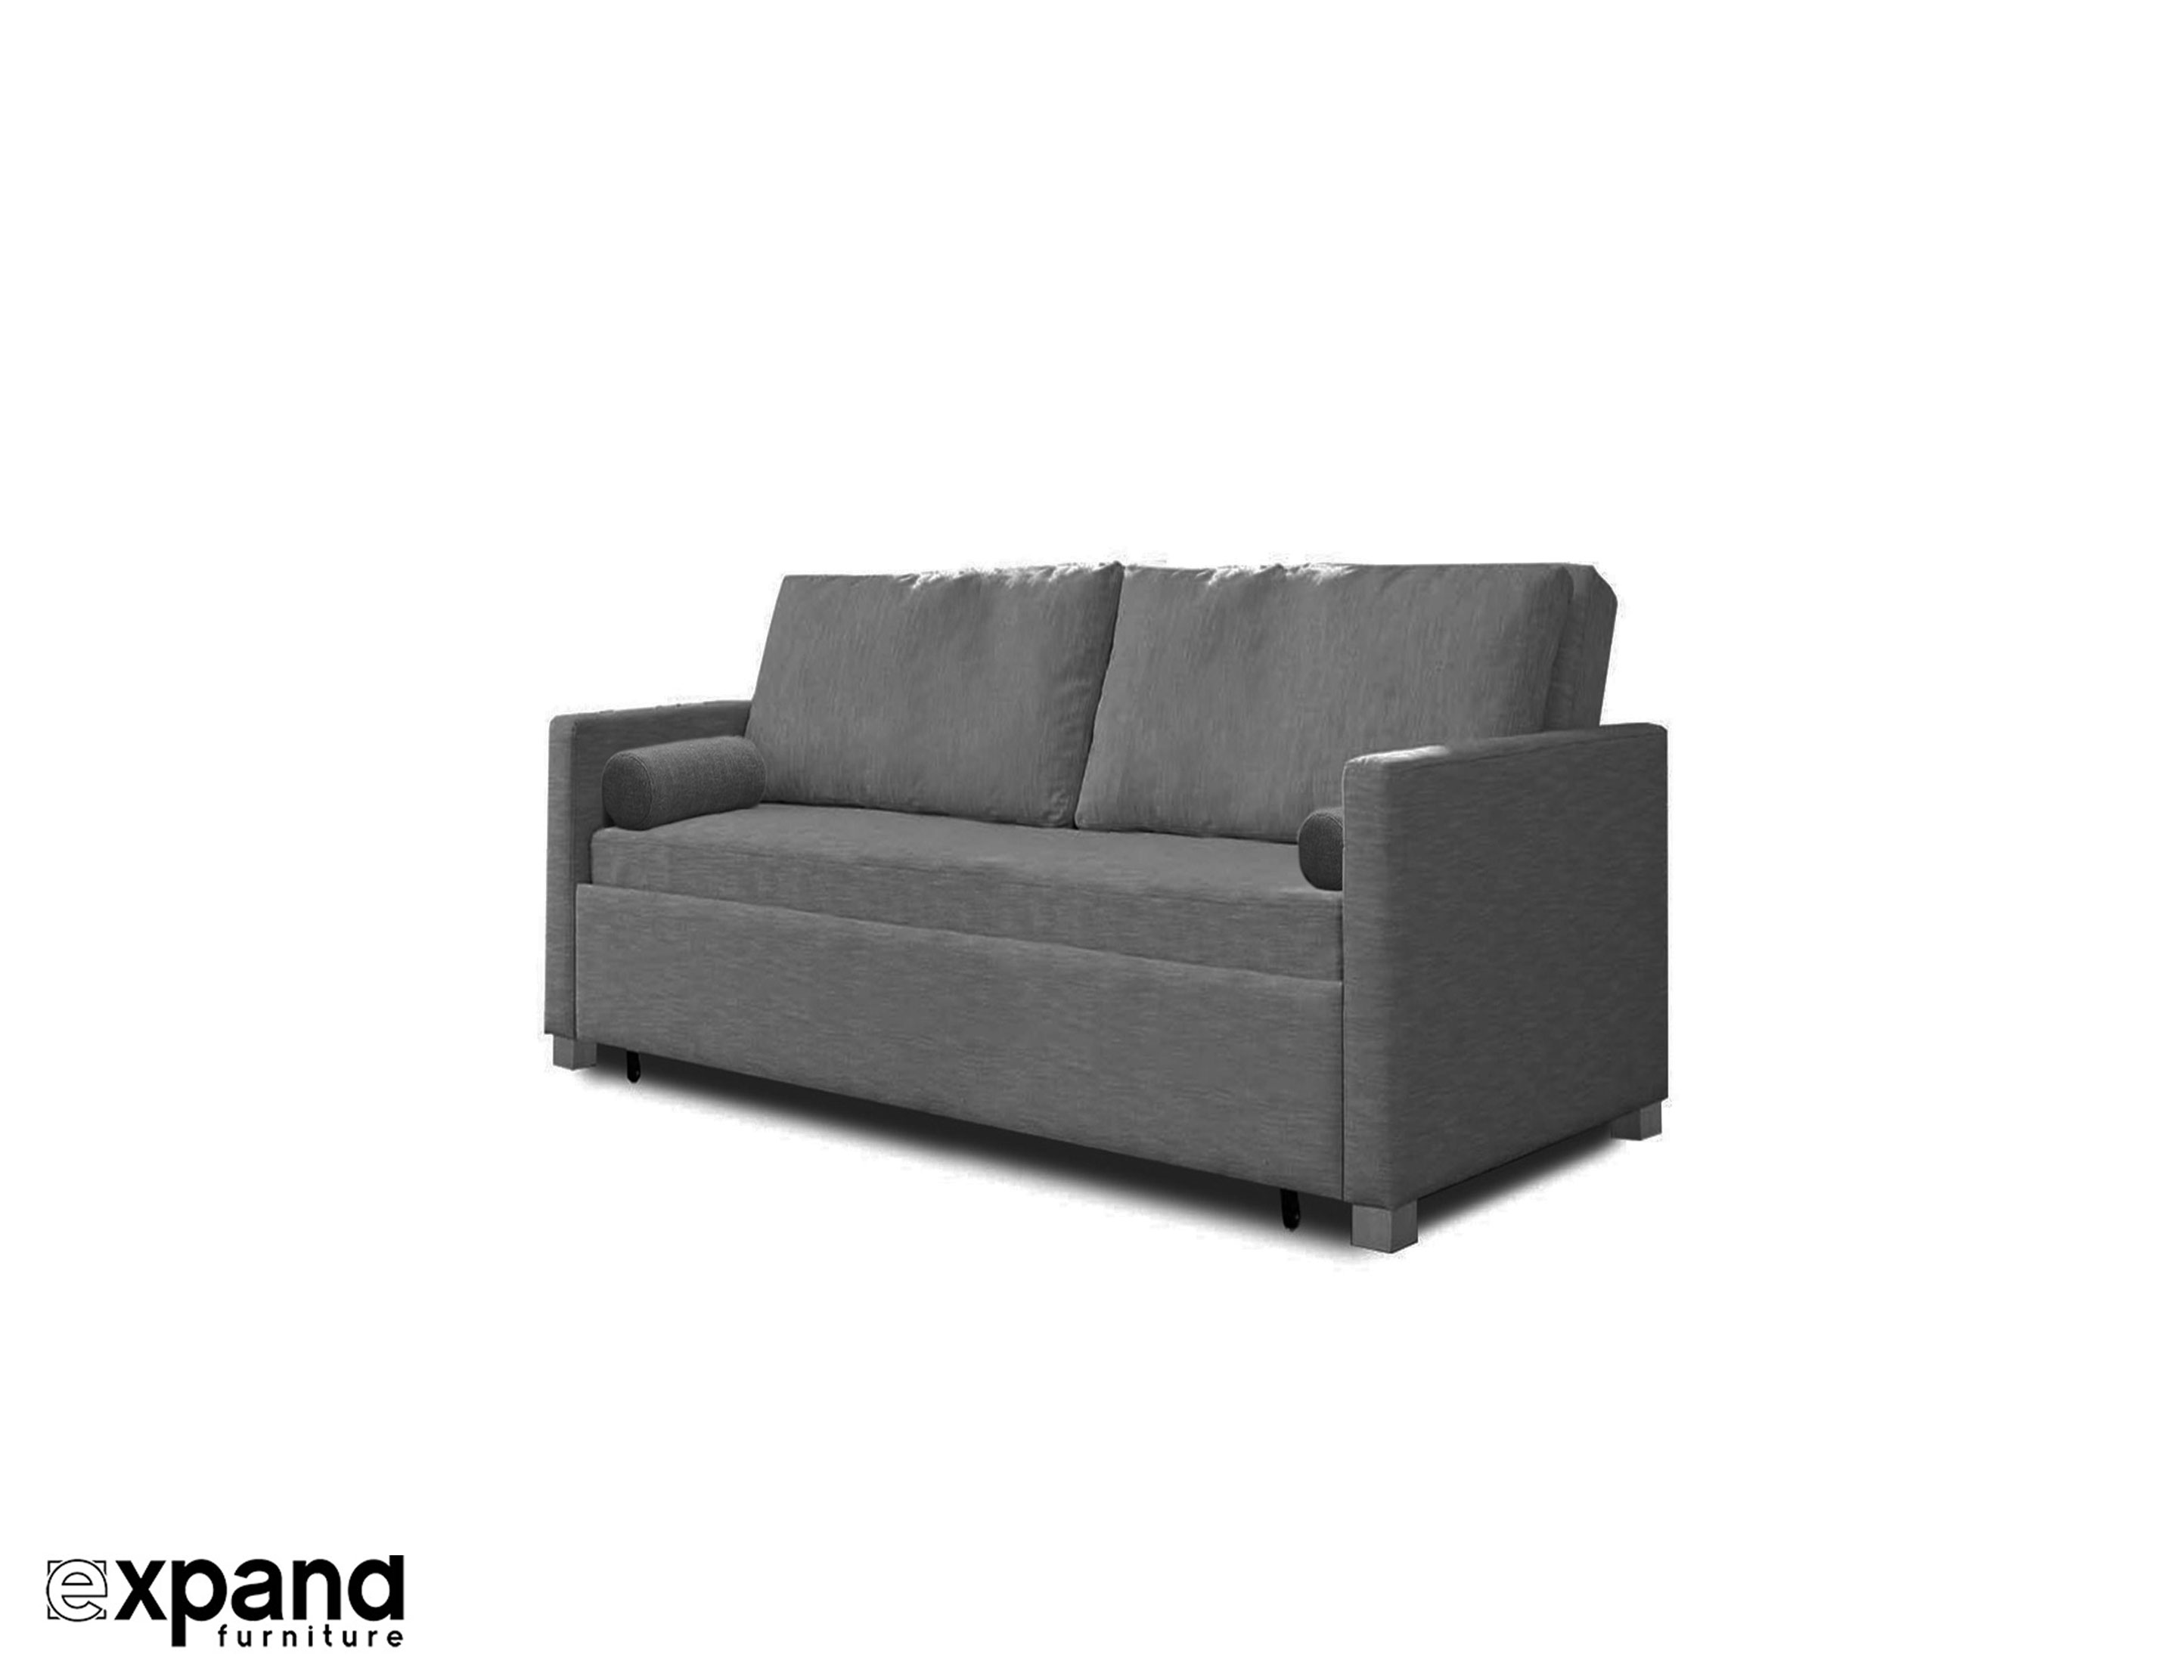 Sofa X Long Harmony Queen Size Memory Foam Sofa Bed